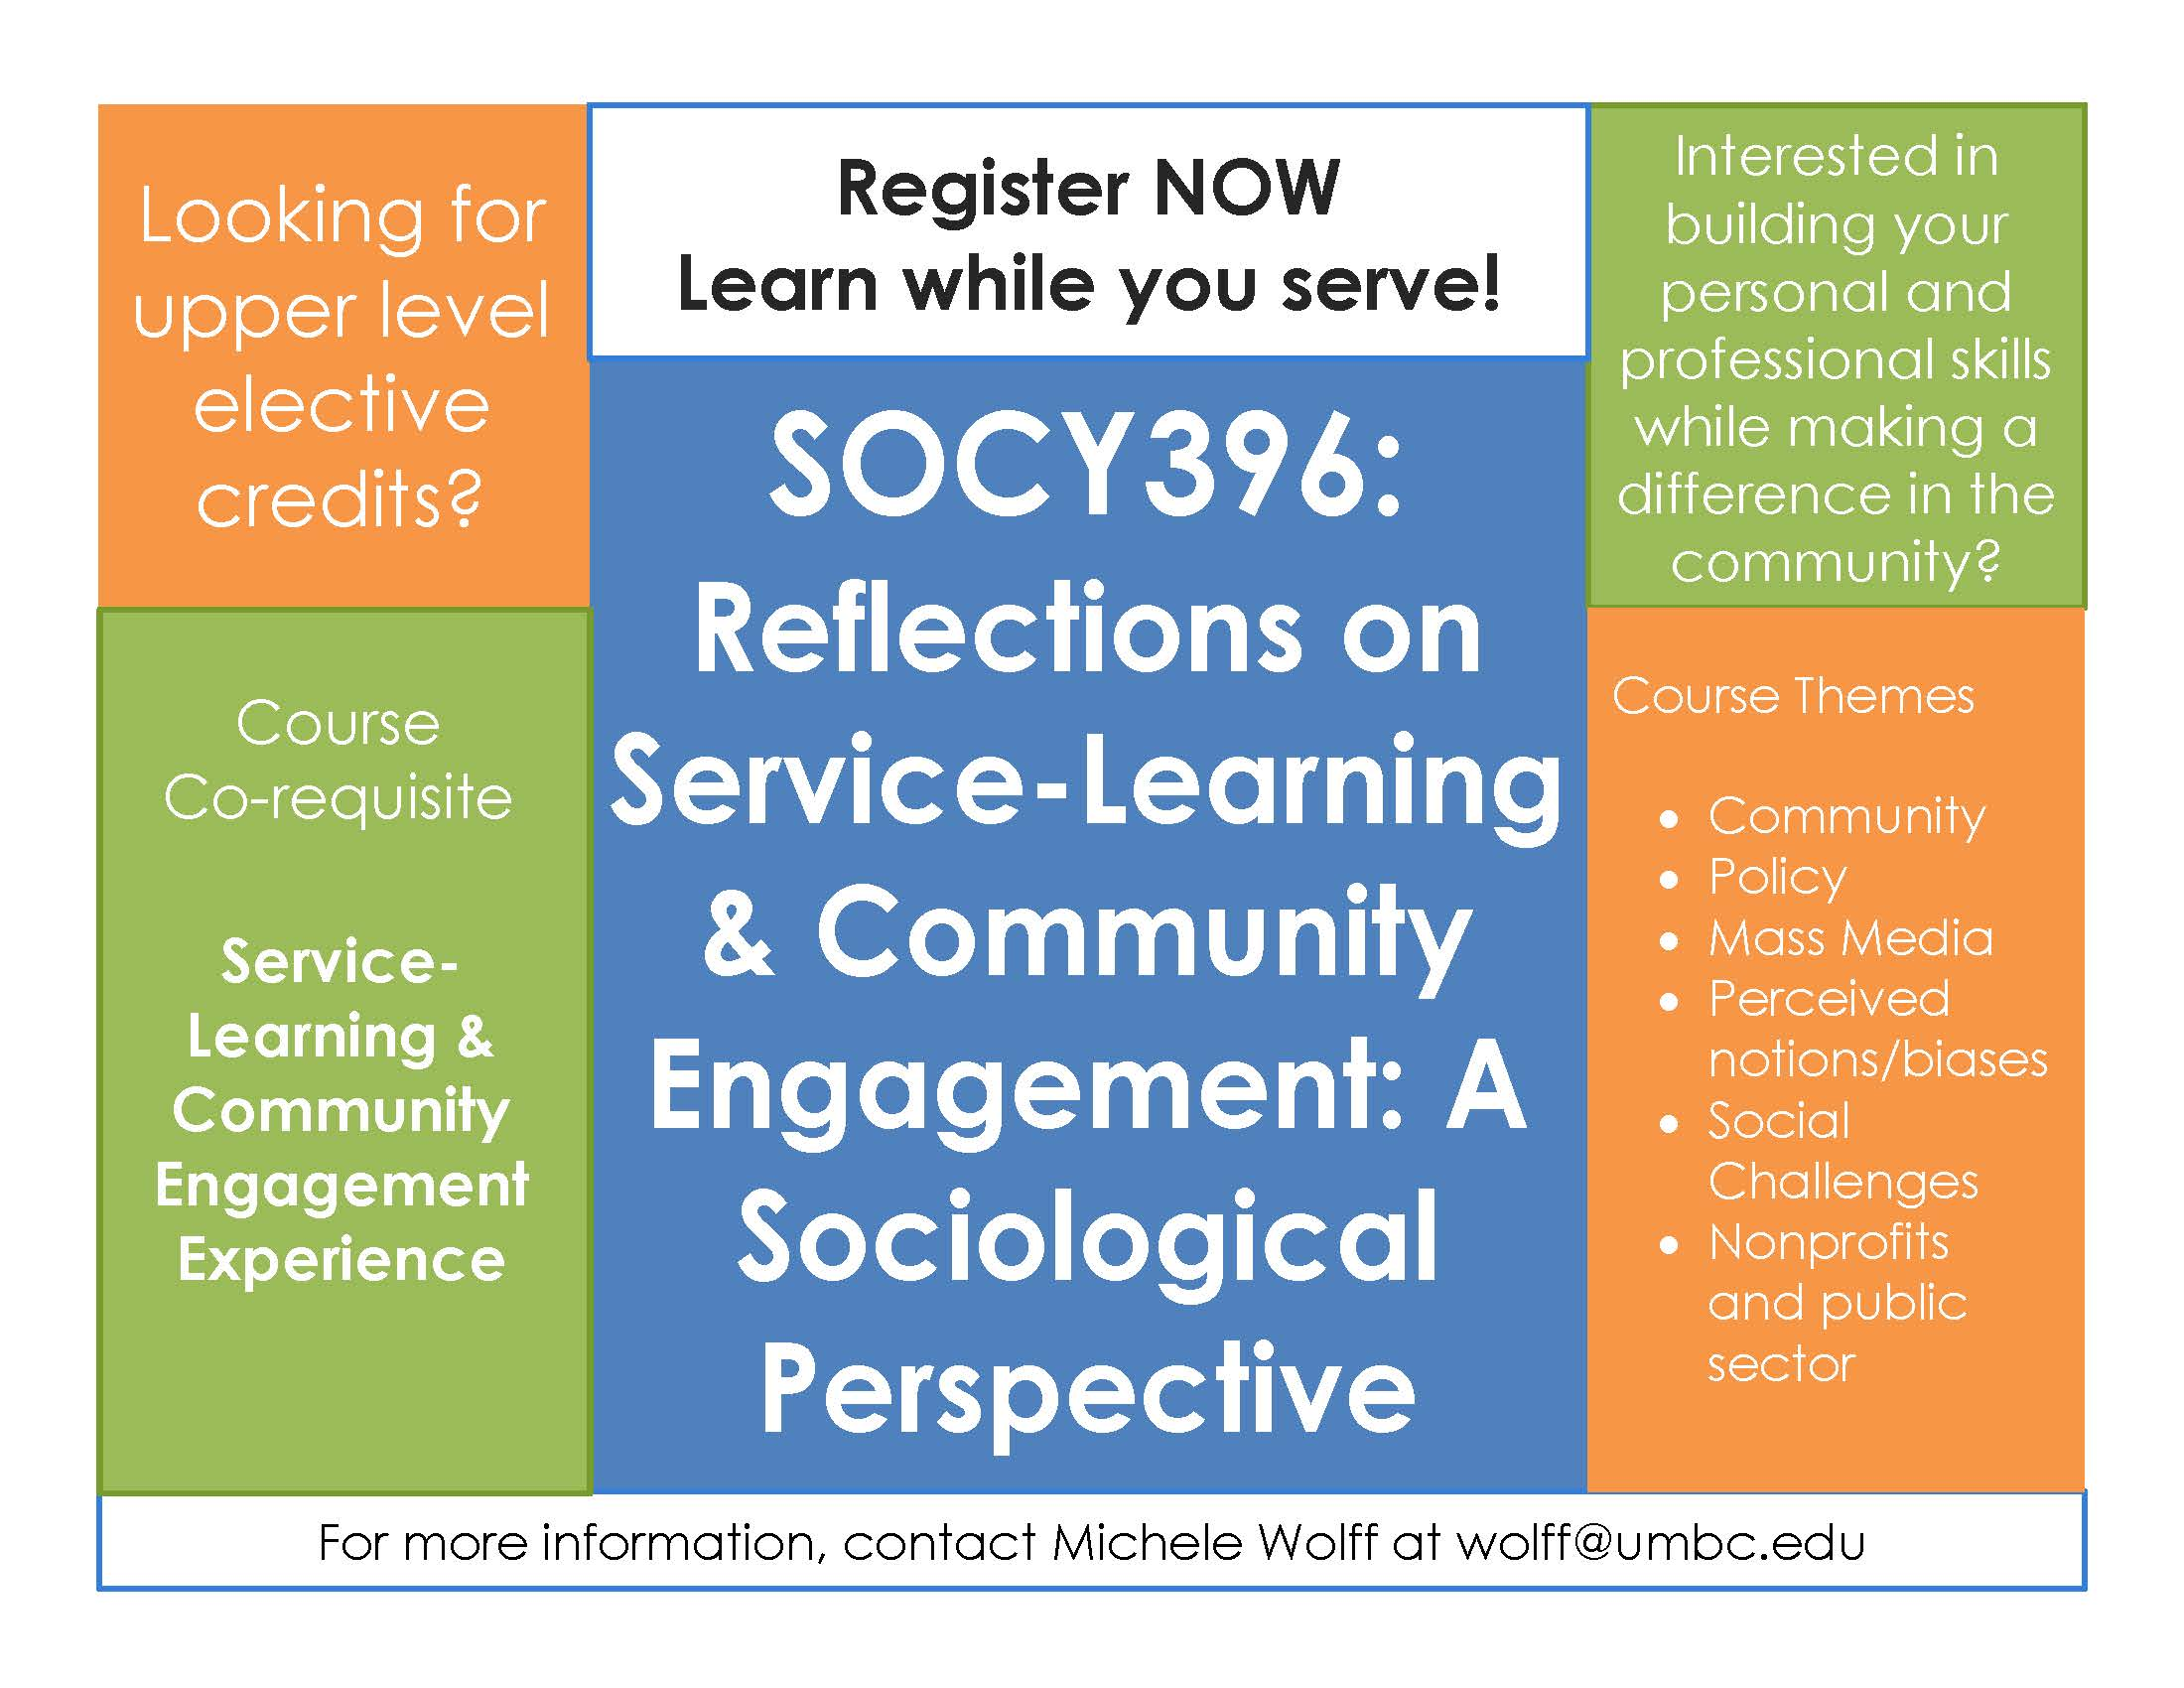 Looking for UL elective credits? Learn while you serve!